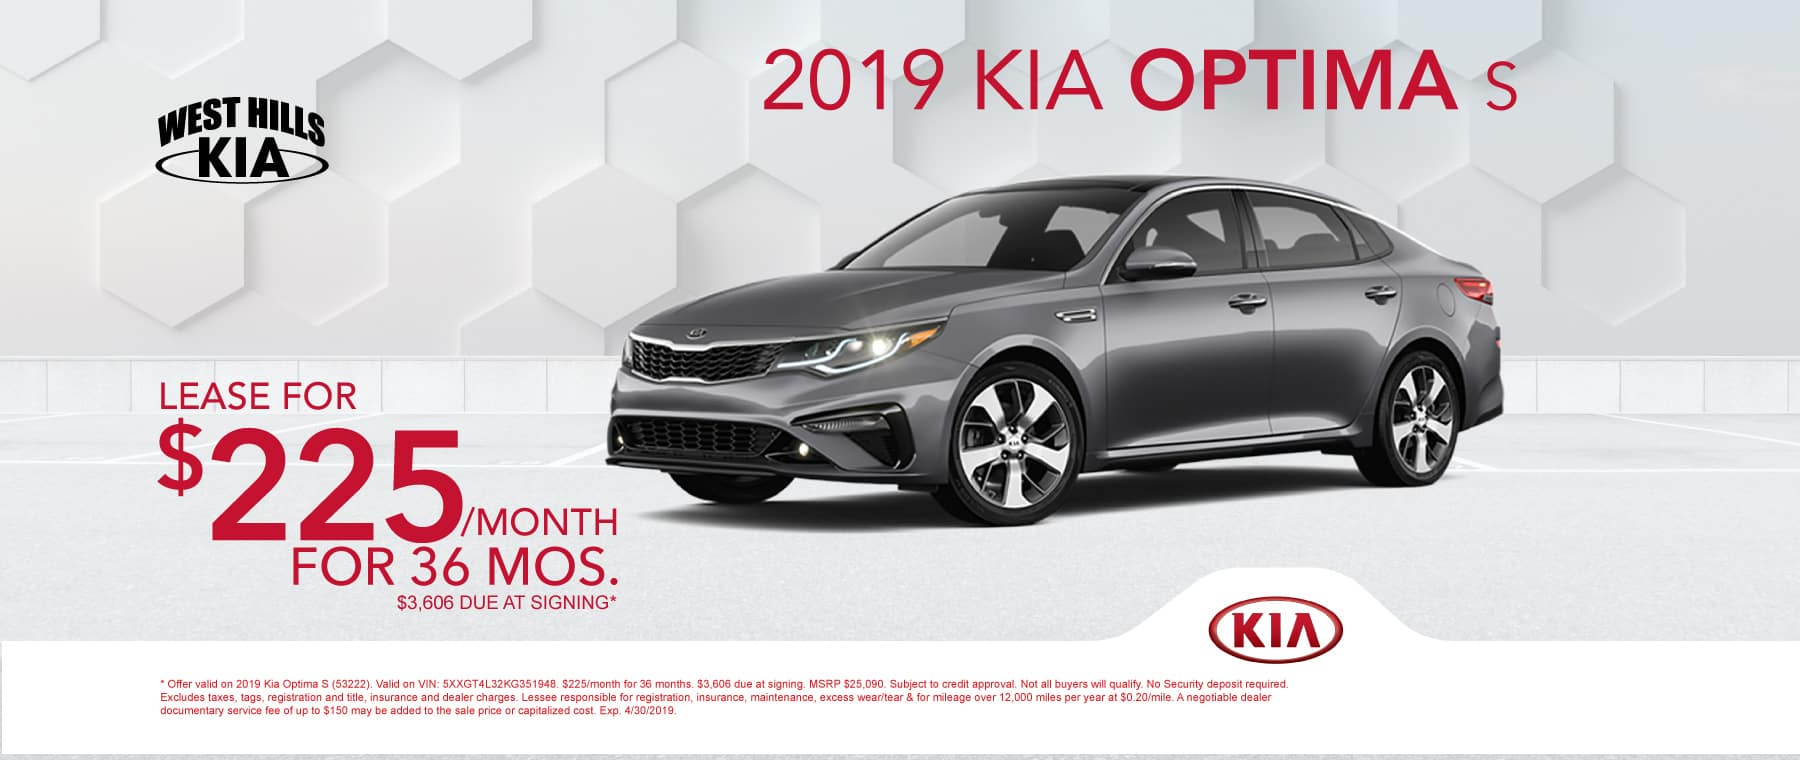 2019 Kia Optima S  $225/month for 36 months  $3,606 Due at Signing   Offer valid on 2019 Kia Optima S (53222). Valid on VIN: 5XXGT4L32KG351948. $225/month for 36 months. $3,606 due at signing. MSRP $25,090. Subject to credit approval. Not all buyers will qualify. No Security deposit required. Excludes taxes, tags, registration and title, insurance and dealer charges. Lessee responsible for registration, insurance, maintenance, excess wear/tear & for mileage over 12,000 miles per year at $0.20/mile. A negotiable dealer documentary service fee of up to $150 may be added to the sale price or capitalized cost. Exp. 4/30/2019.